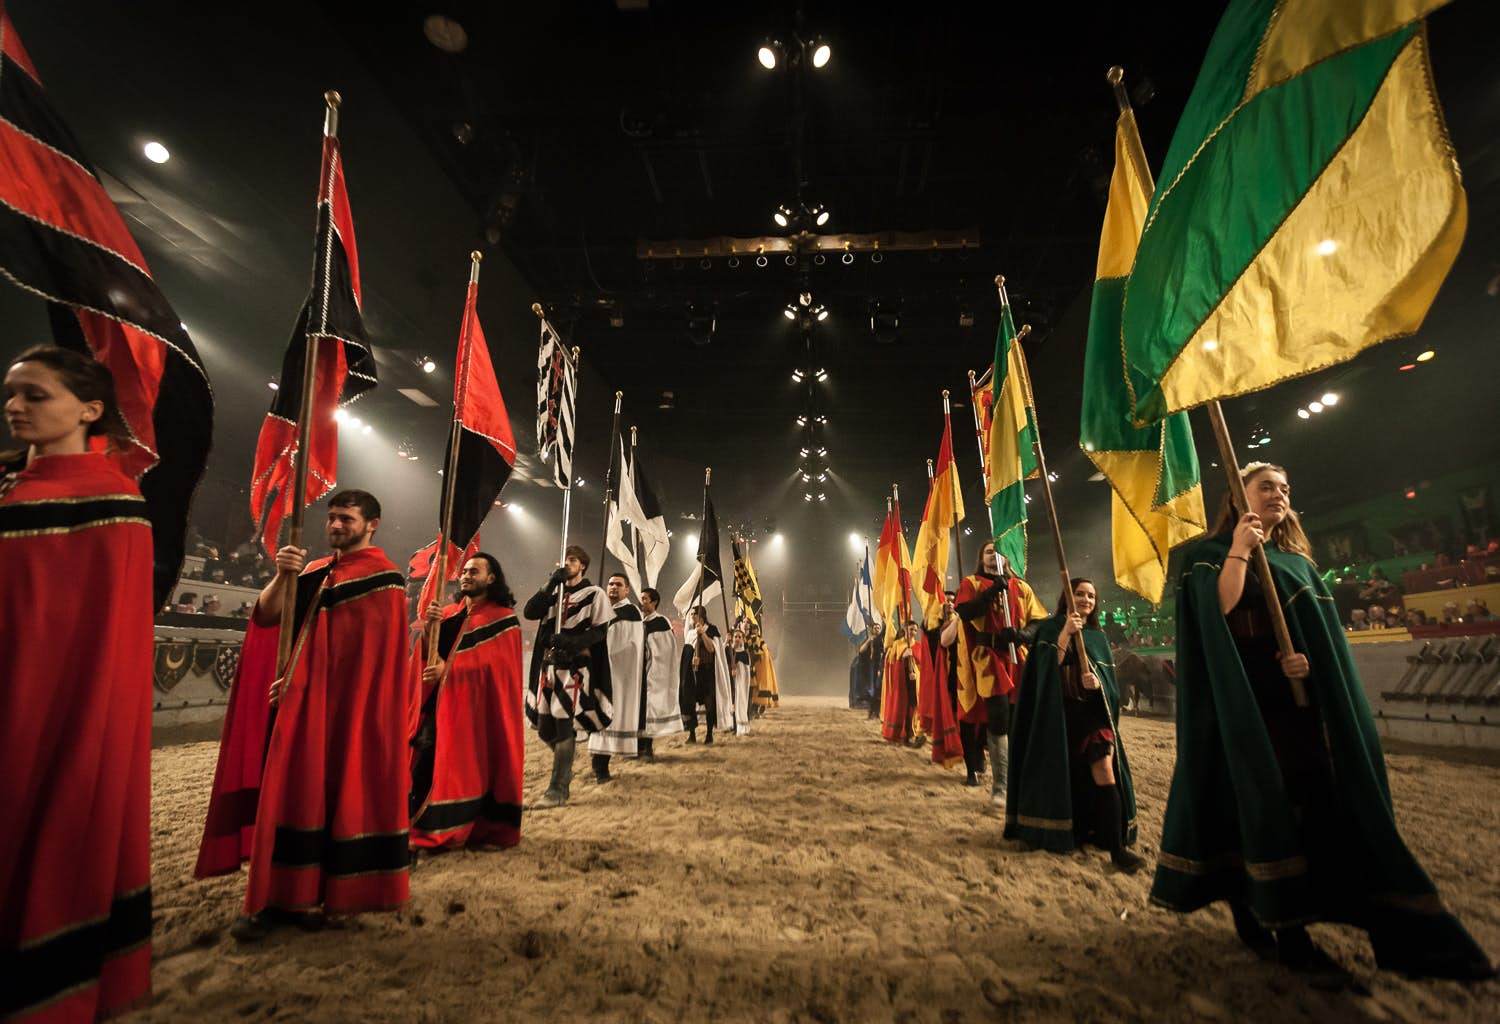 Background performers standing in a line during one of the live Medieval Times shows.